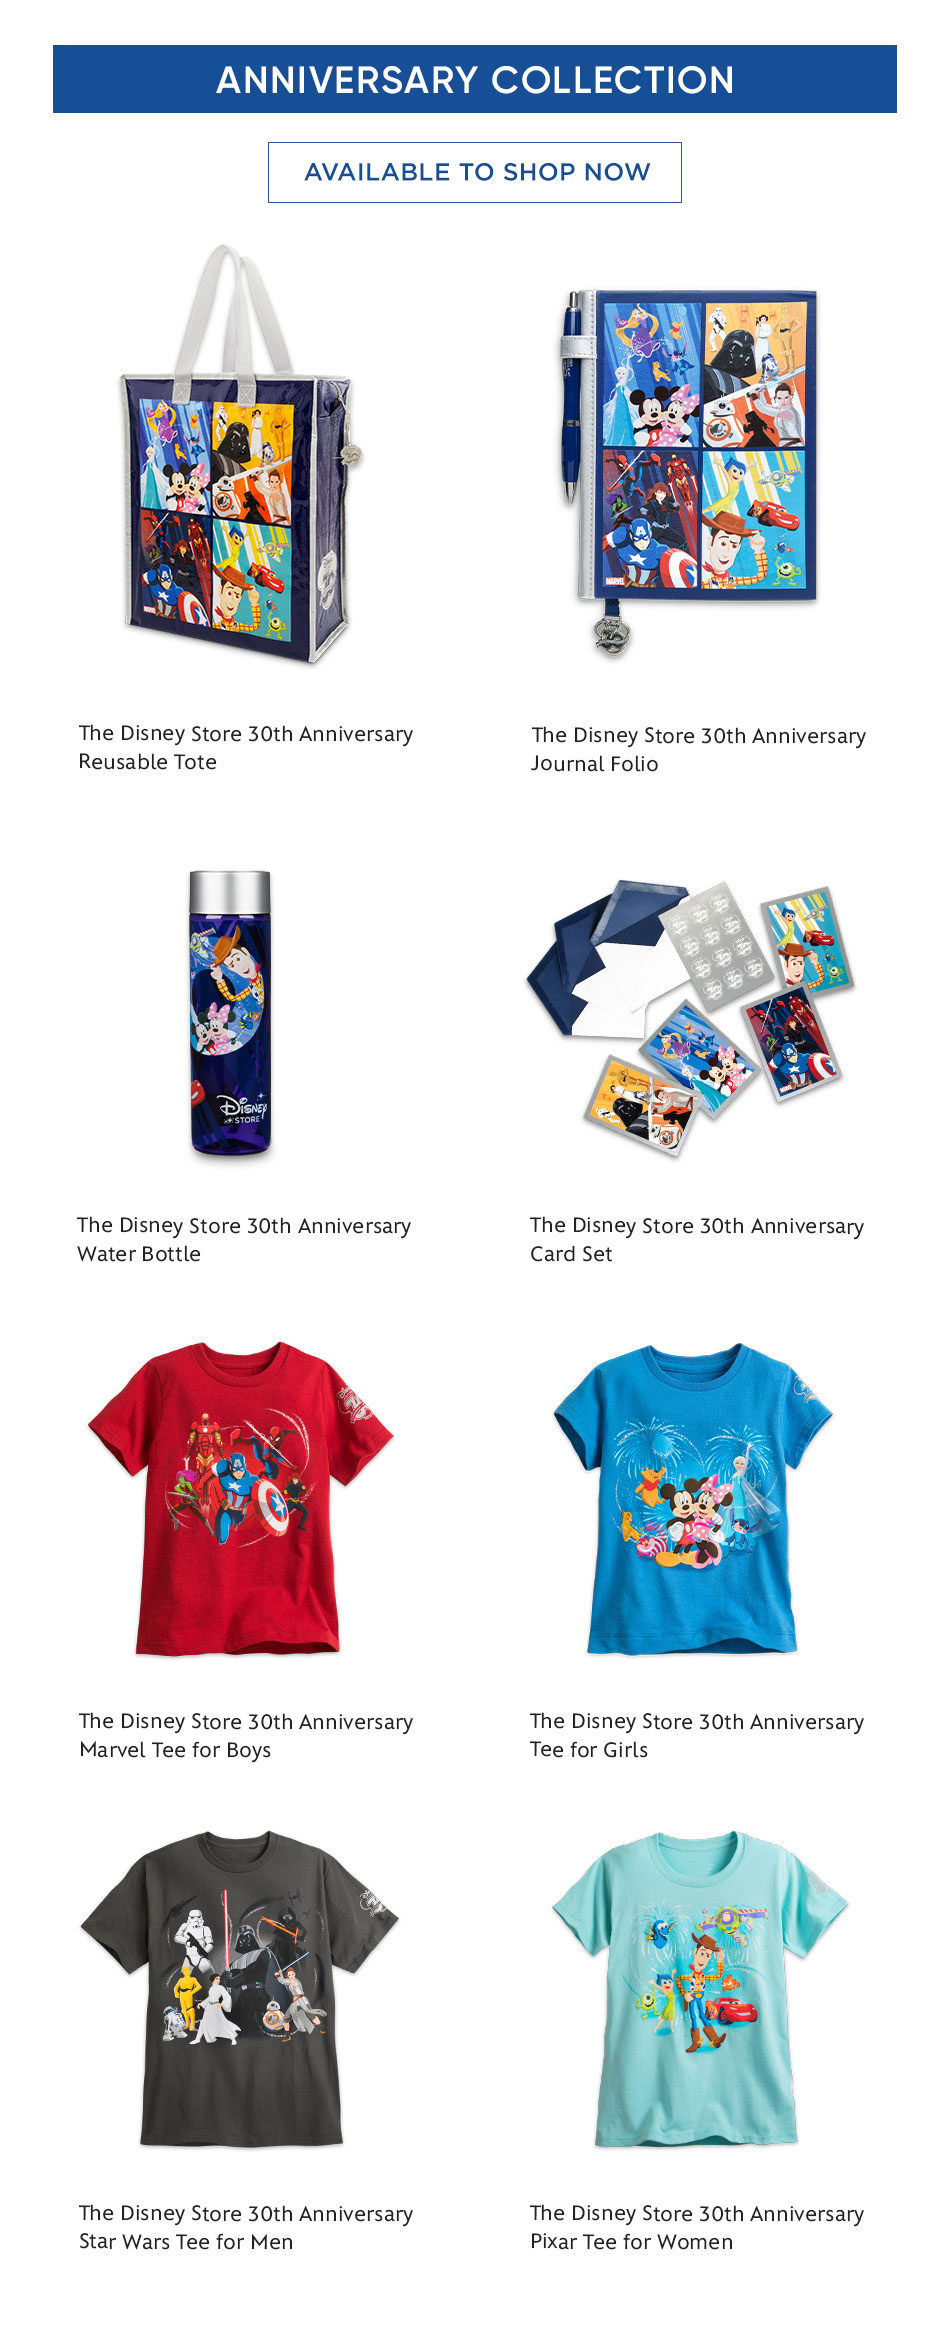 The Anniversary Gear - Now Available